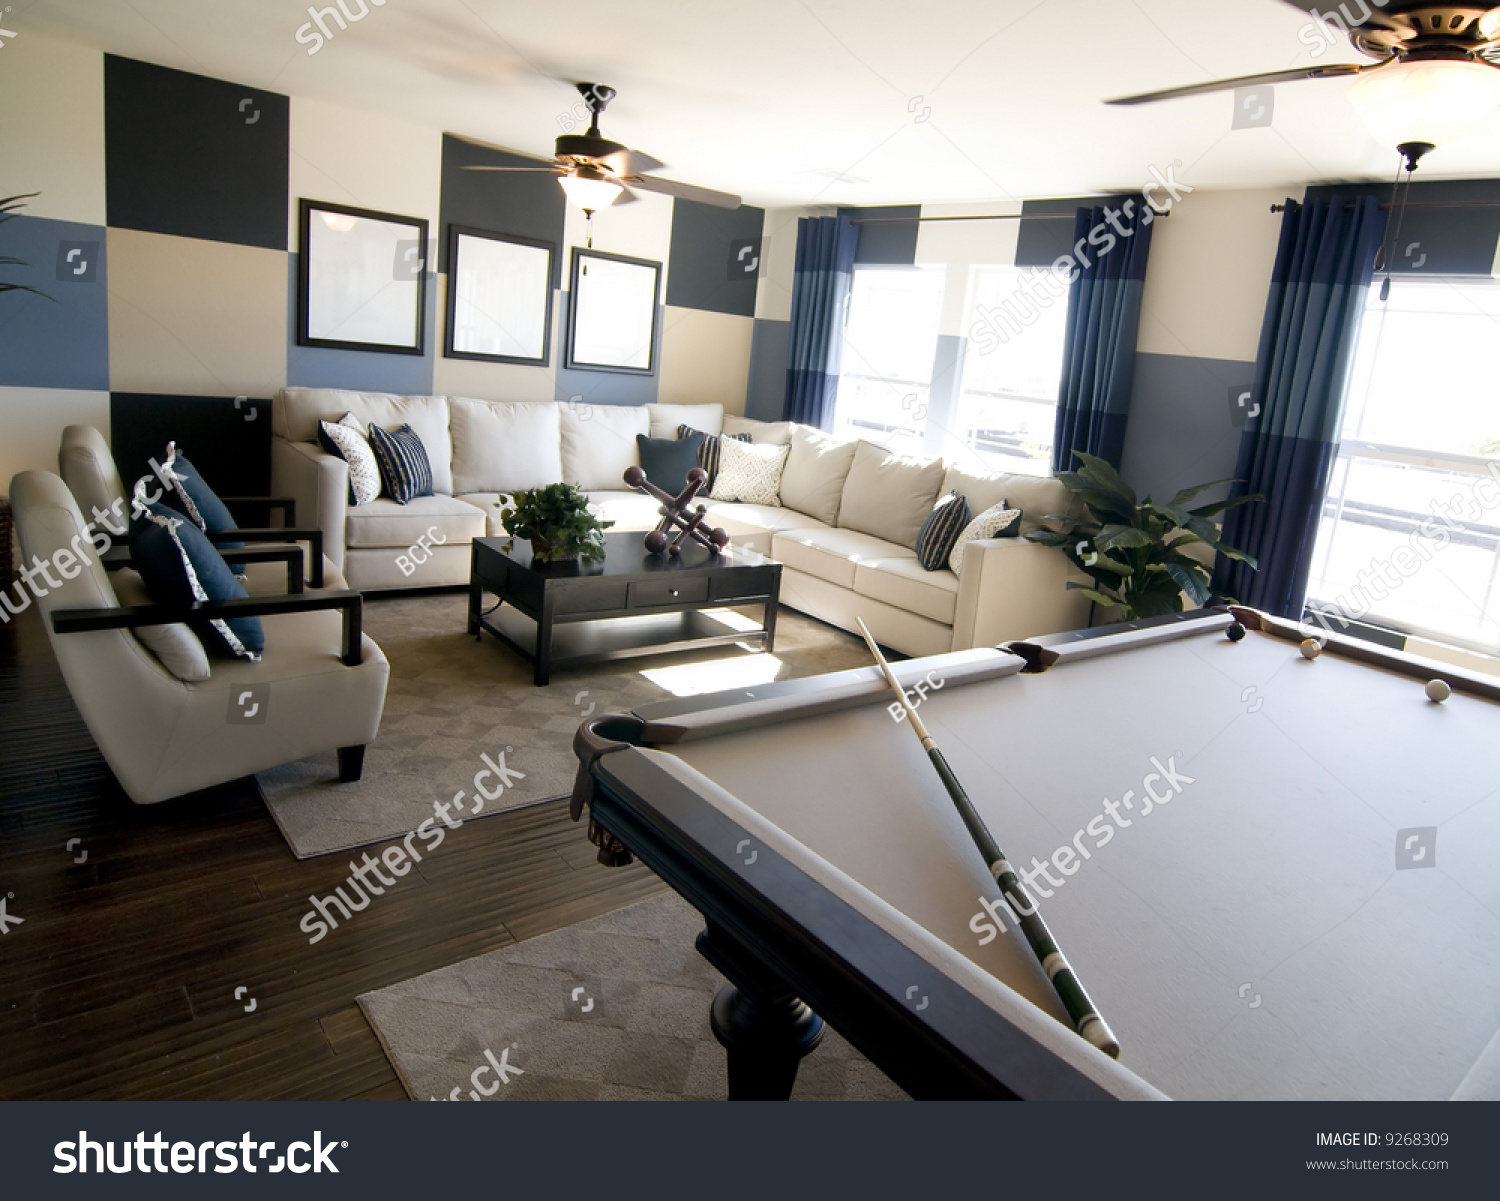 Stylish Modern Luxury Game Room Interior Stock Photo 9268309 Shutterstock